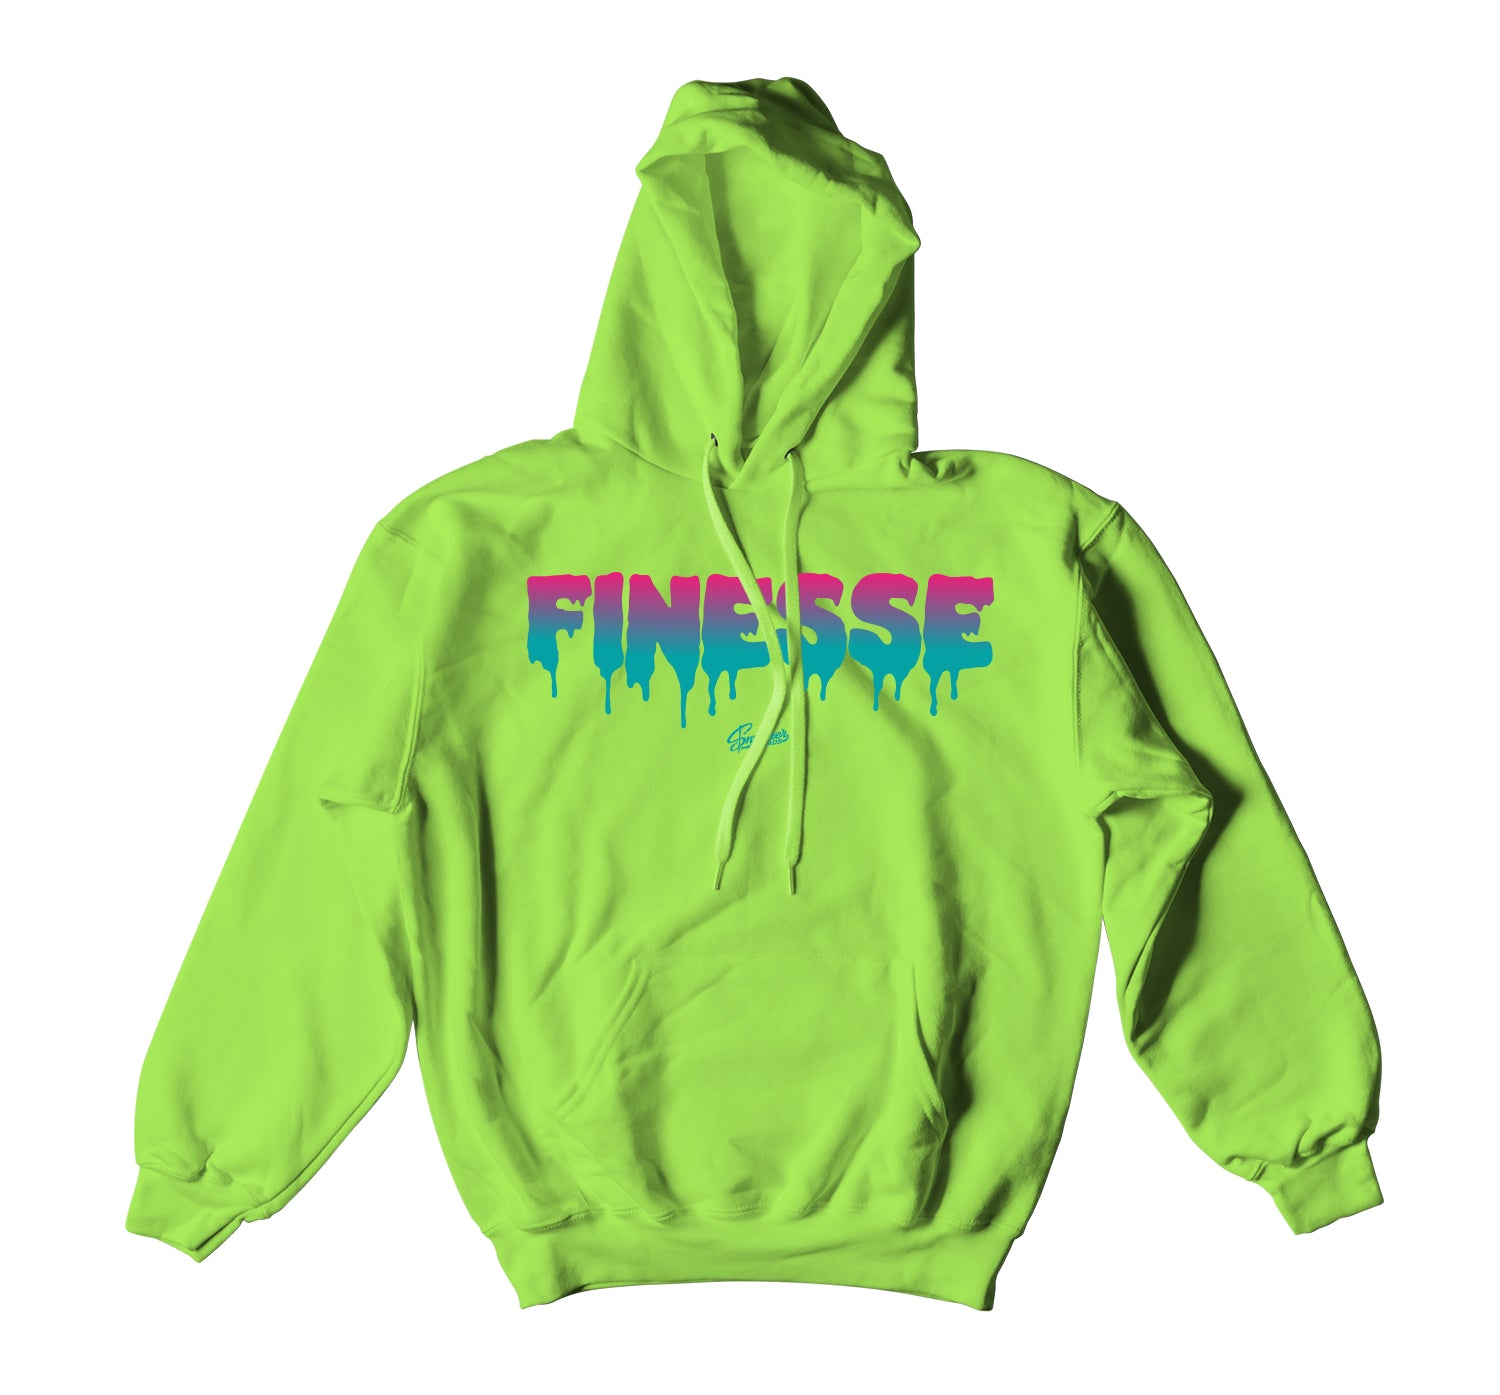 All Star 2020 Swackhammer Finesse Hoody